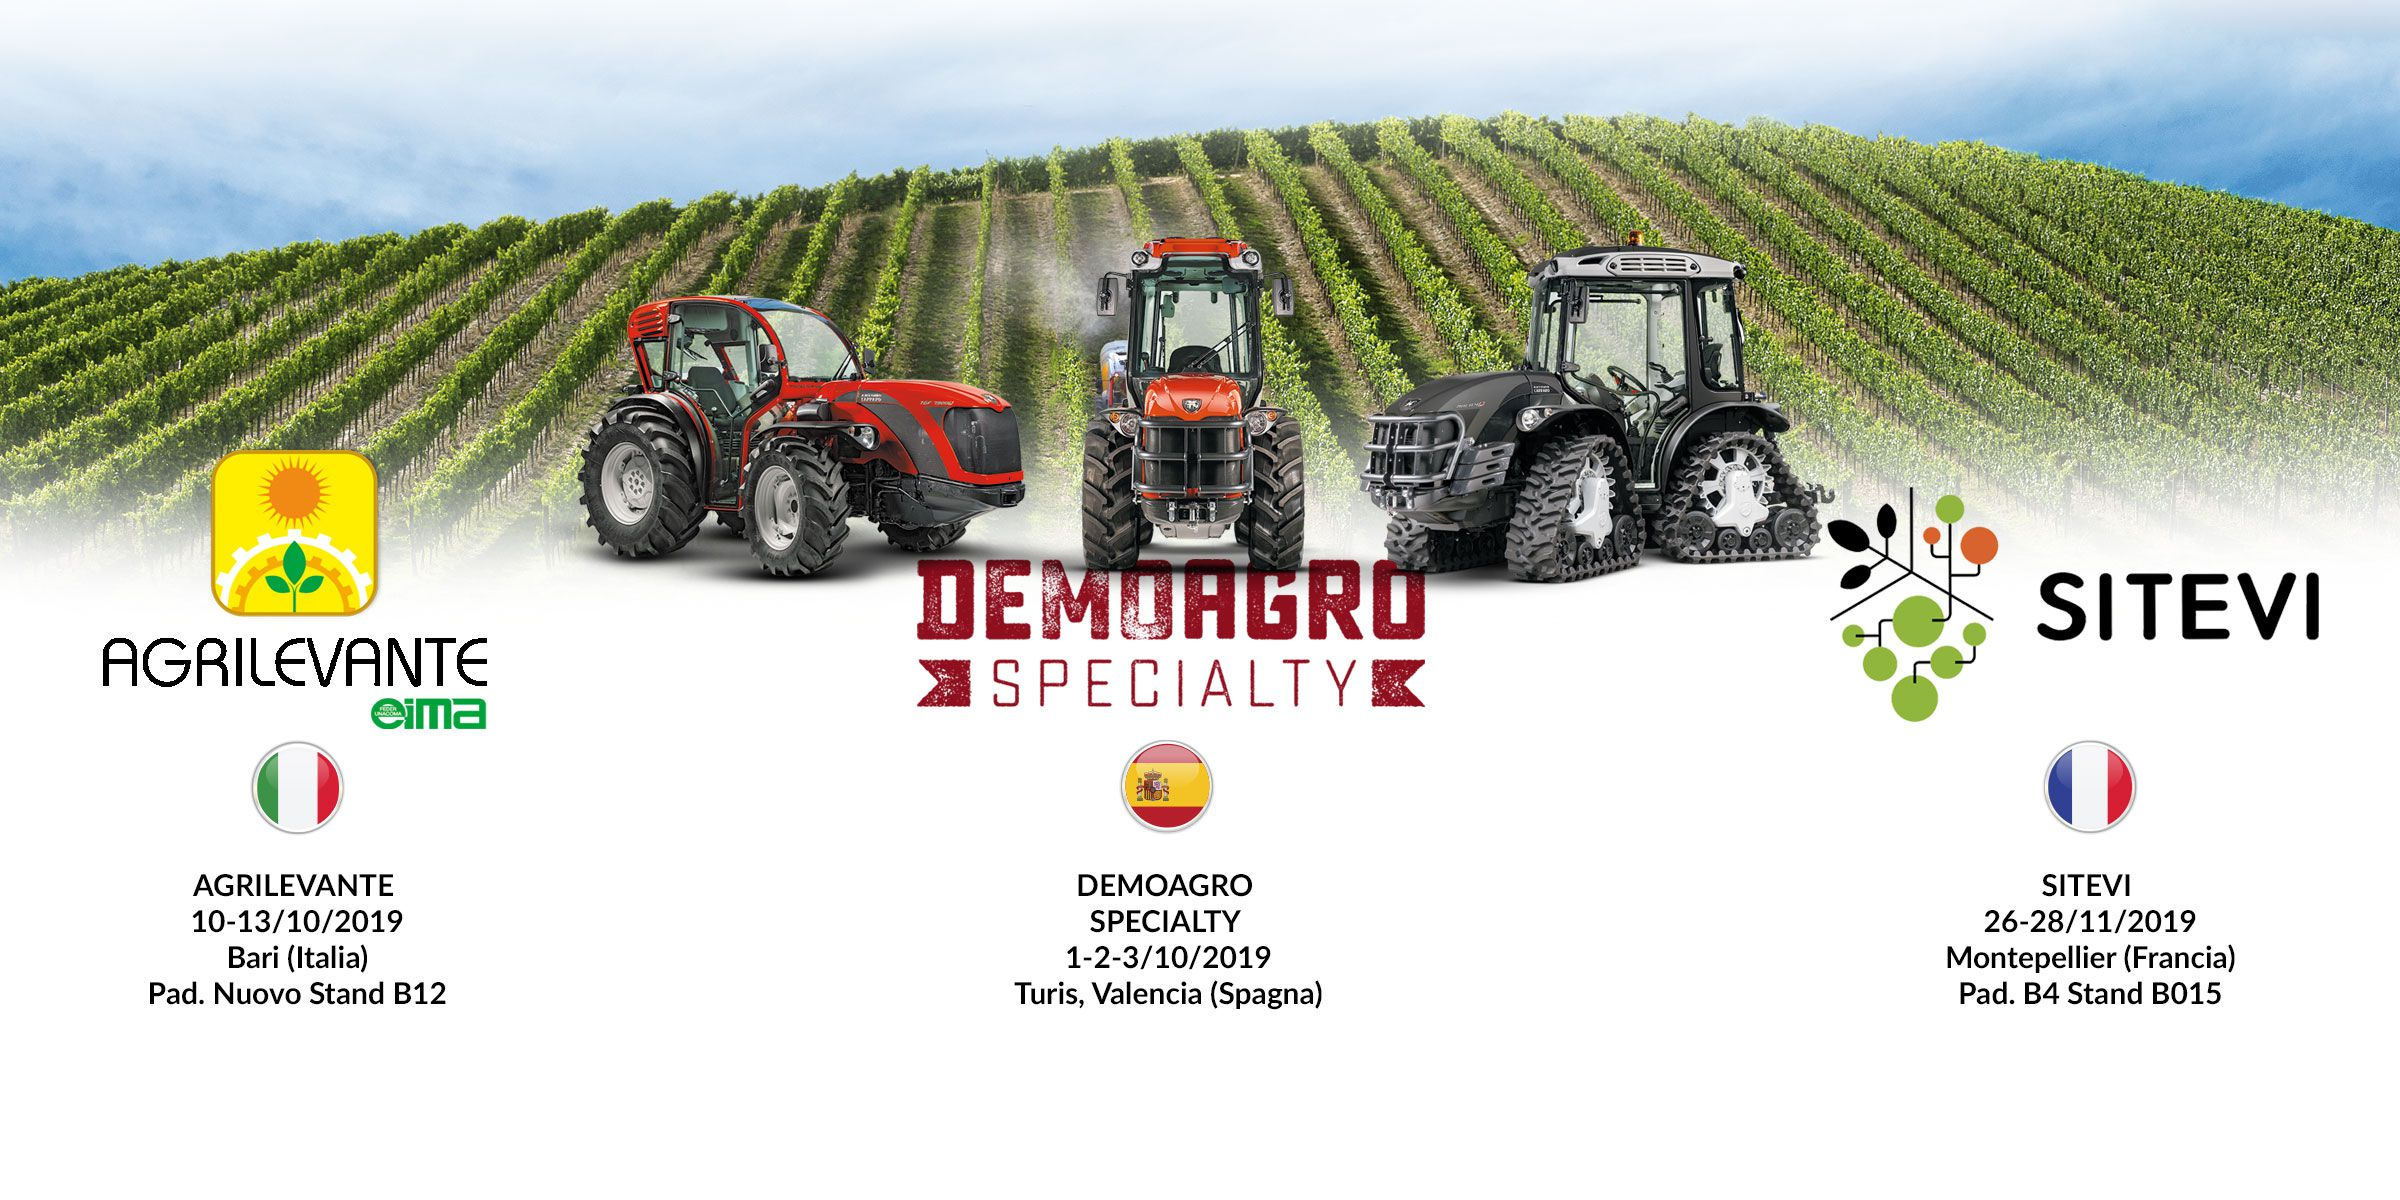 Tractors | Antonio Carraro | Tractor People